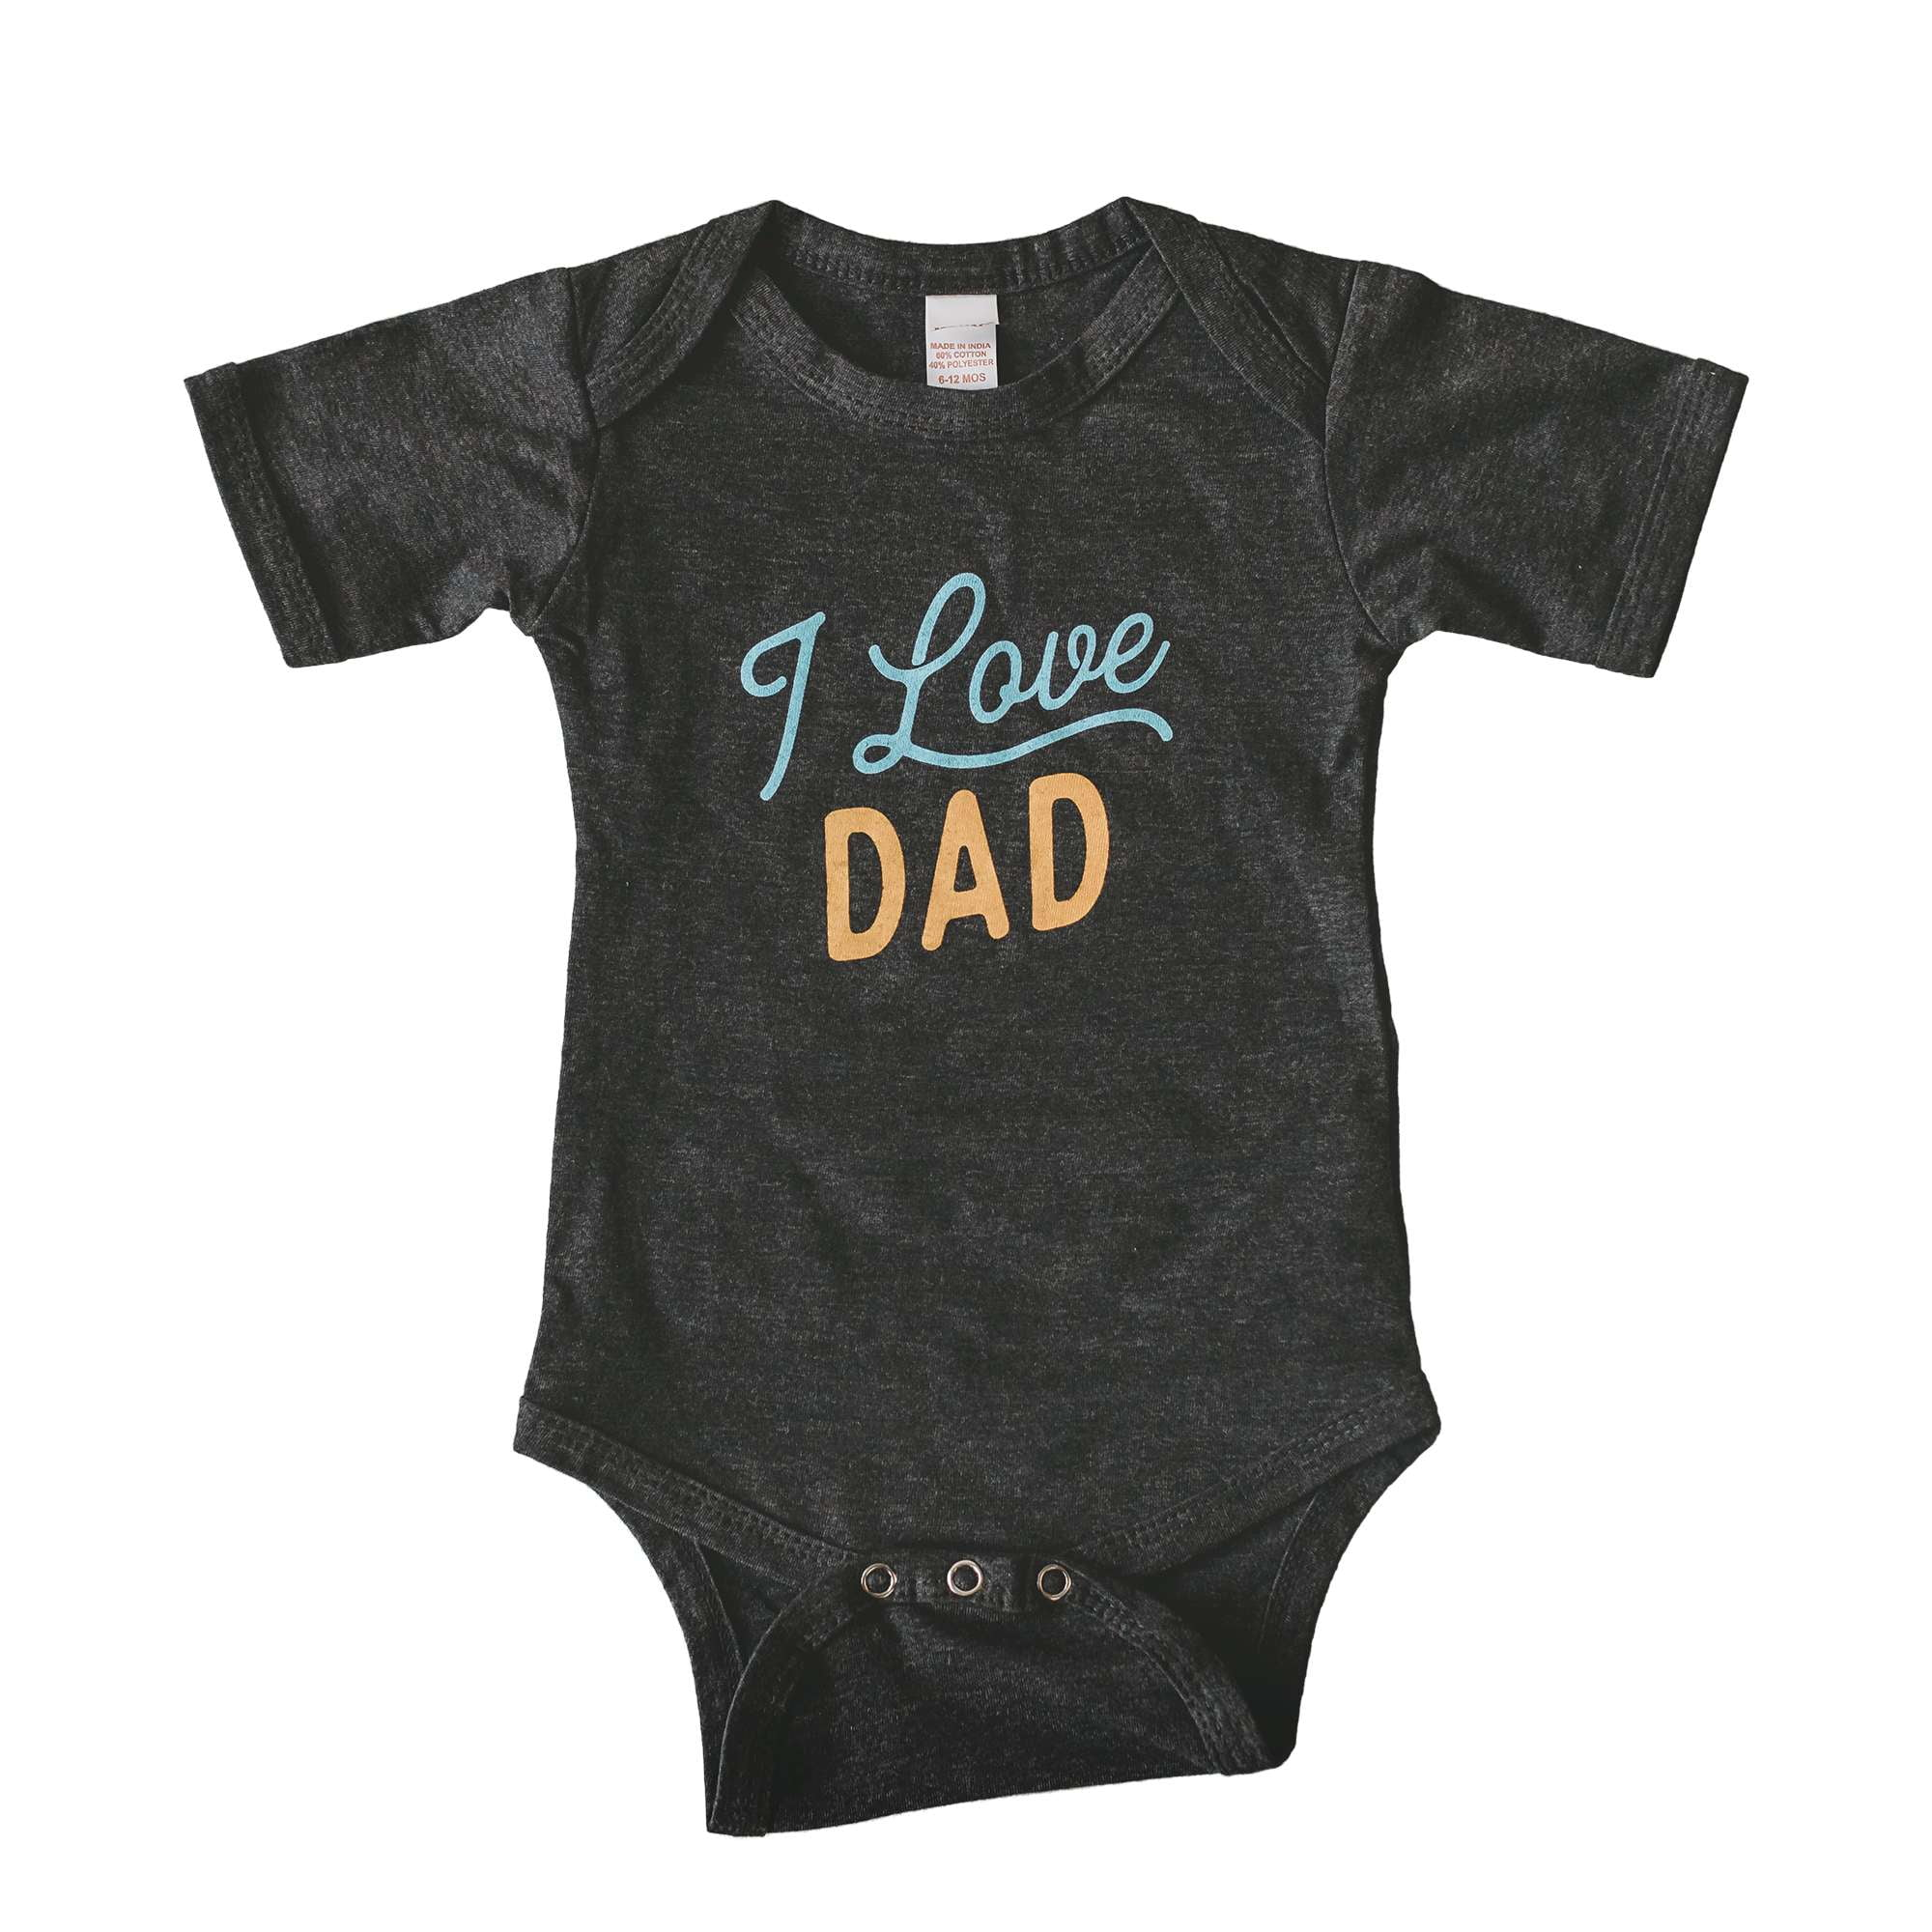 I Love Dad baby bodysuit - Sweetpea and Co.